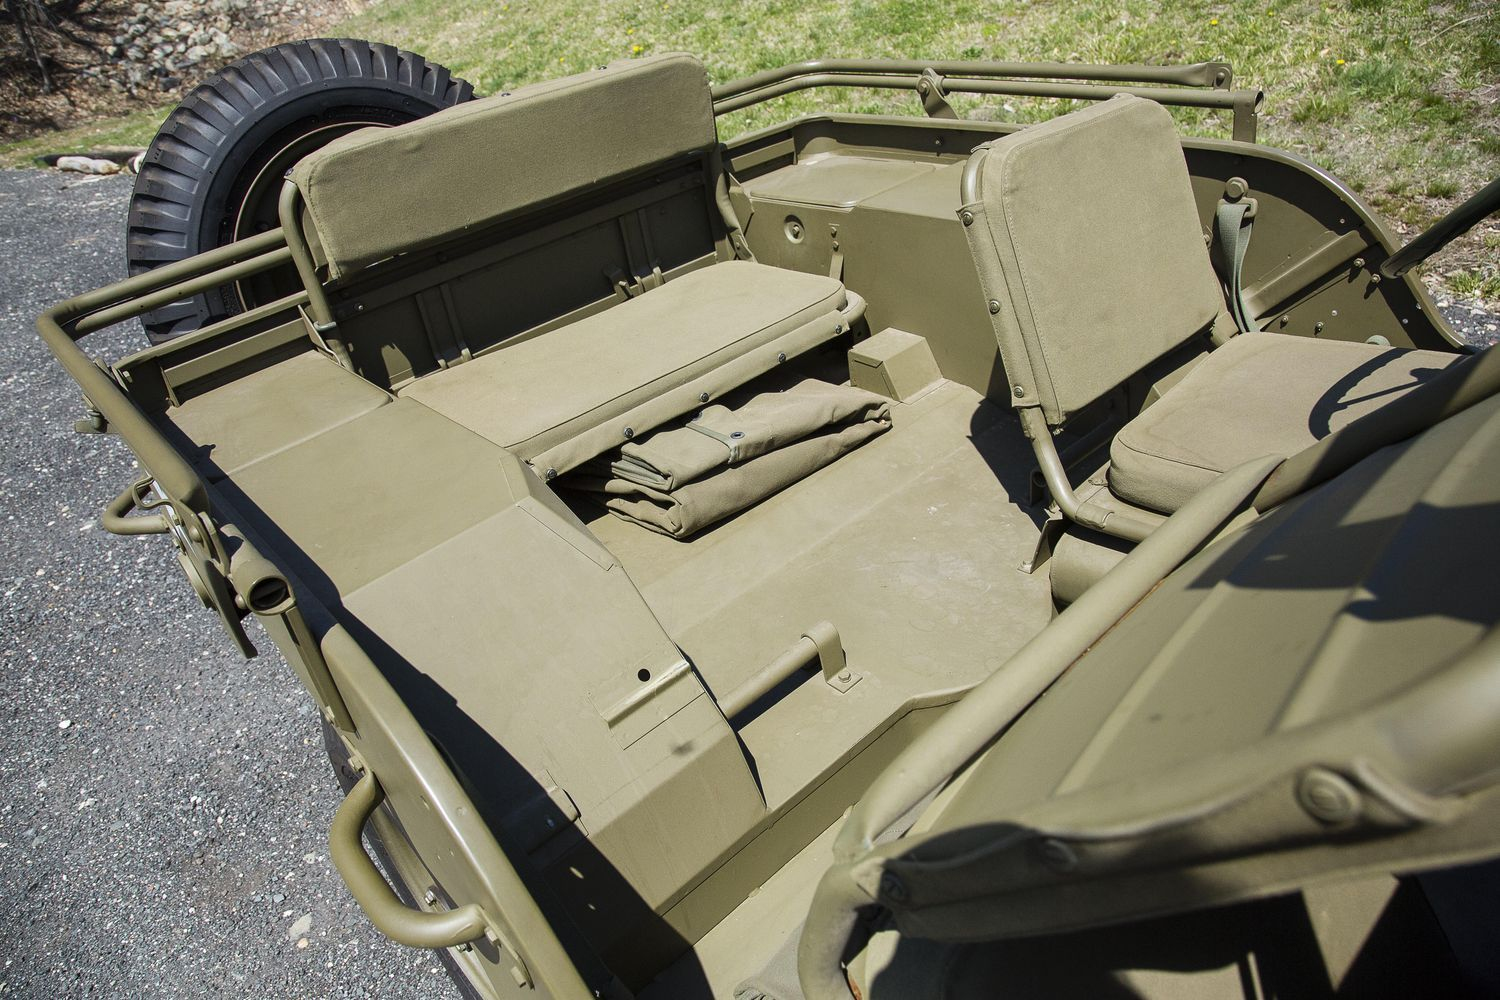 found in crate 1944 willys mb jeep to cross the block